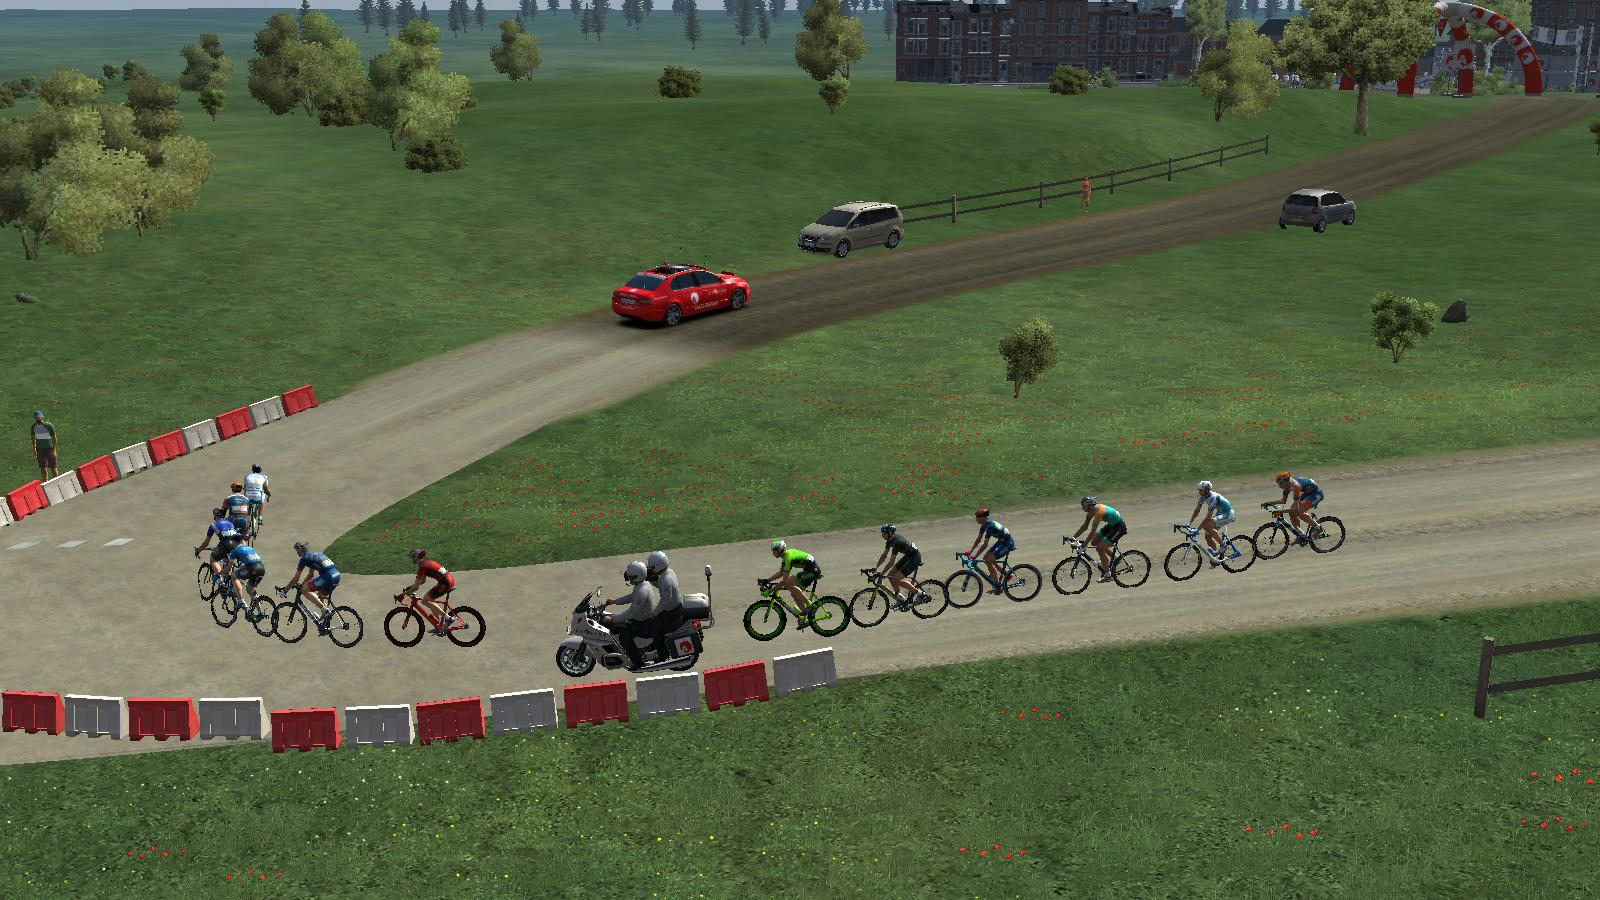 pcmdaily.com/images/mg/2019/Races/PTHC/Rheden/4.jpg